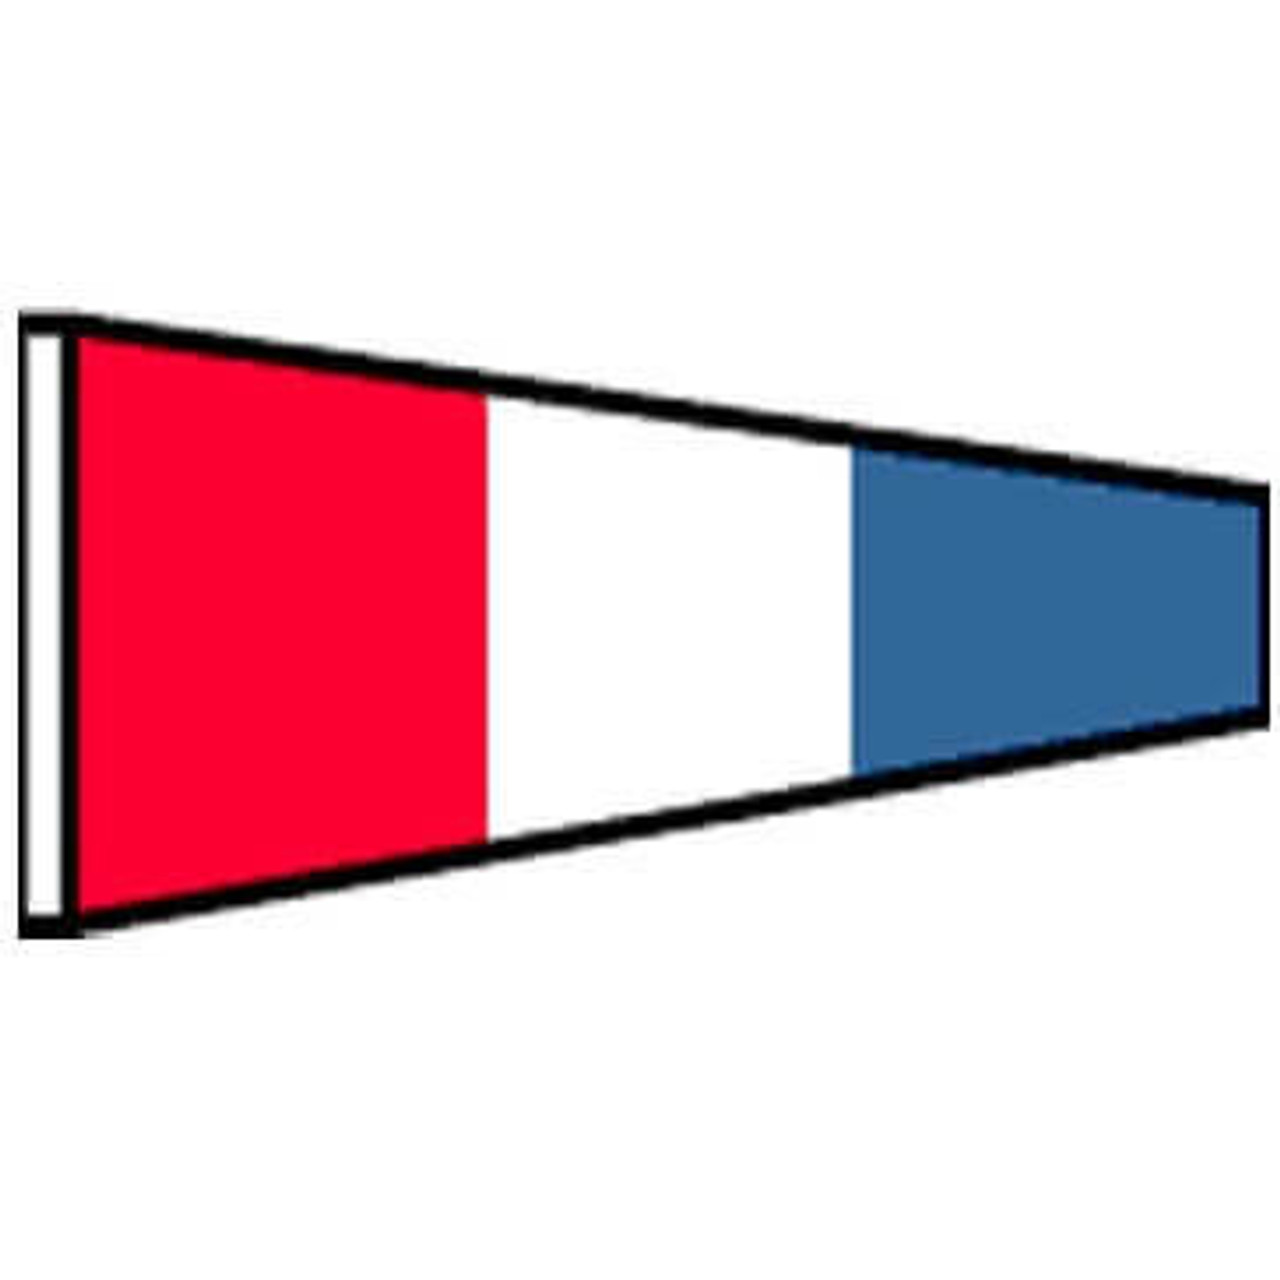 Three Flag code signal with colors red, white, and blue